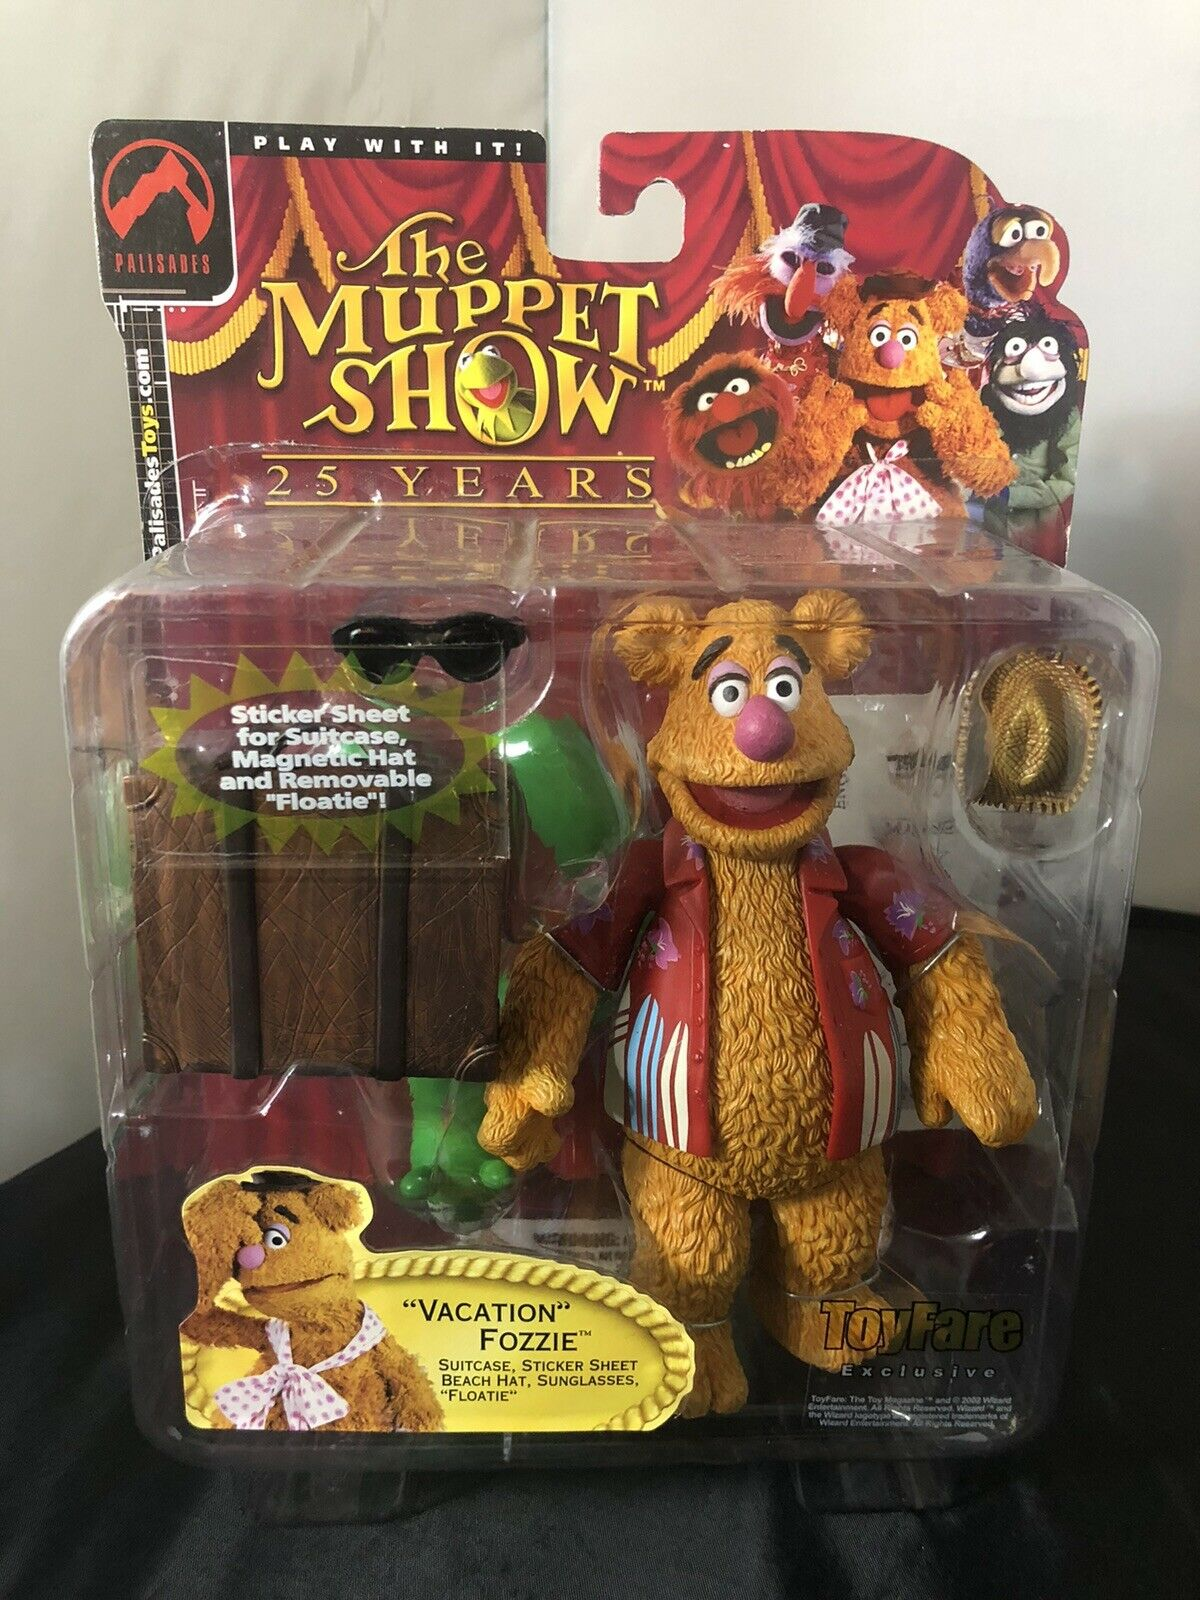 PALISADES MUPPET SHOW 25years 'Vacation' FOZZIE BEAR FIGURE, Spielzeugfare Exclusive